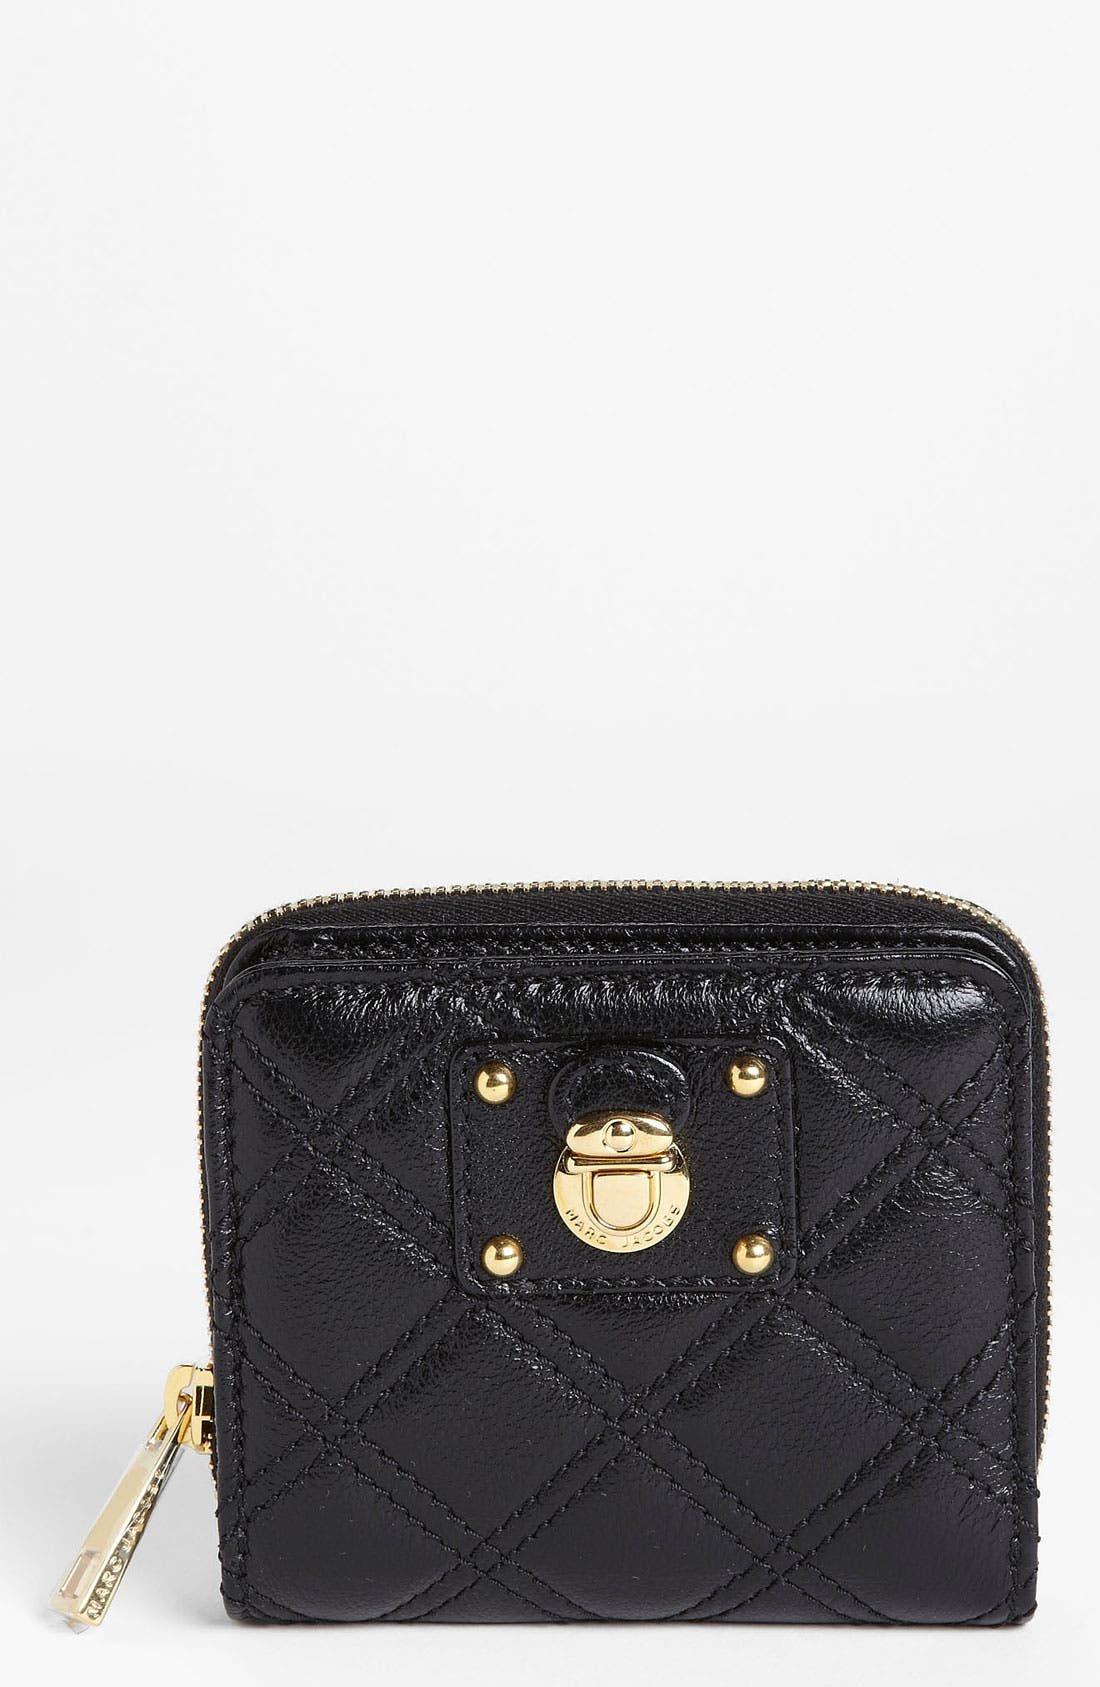 Main Image - MARC JACOBS 'Quilting Anabela' French Wallet